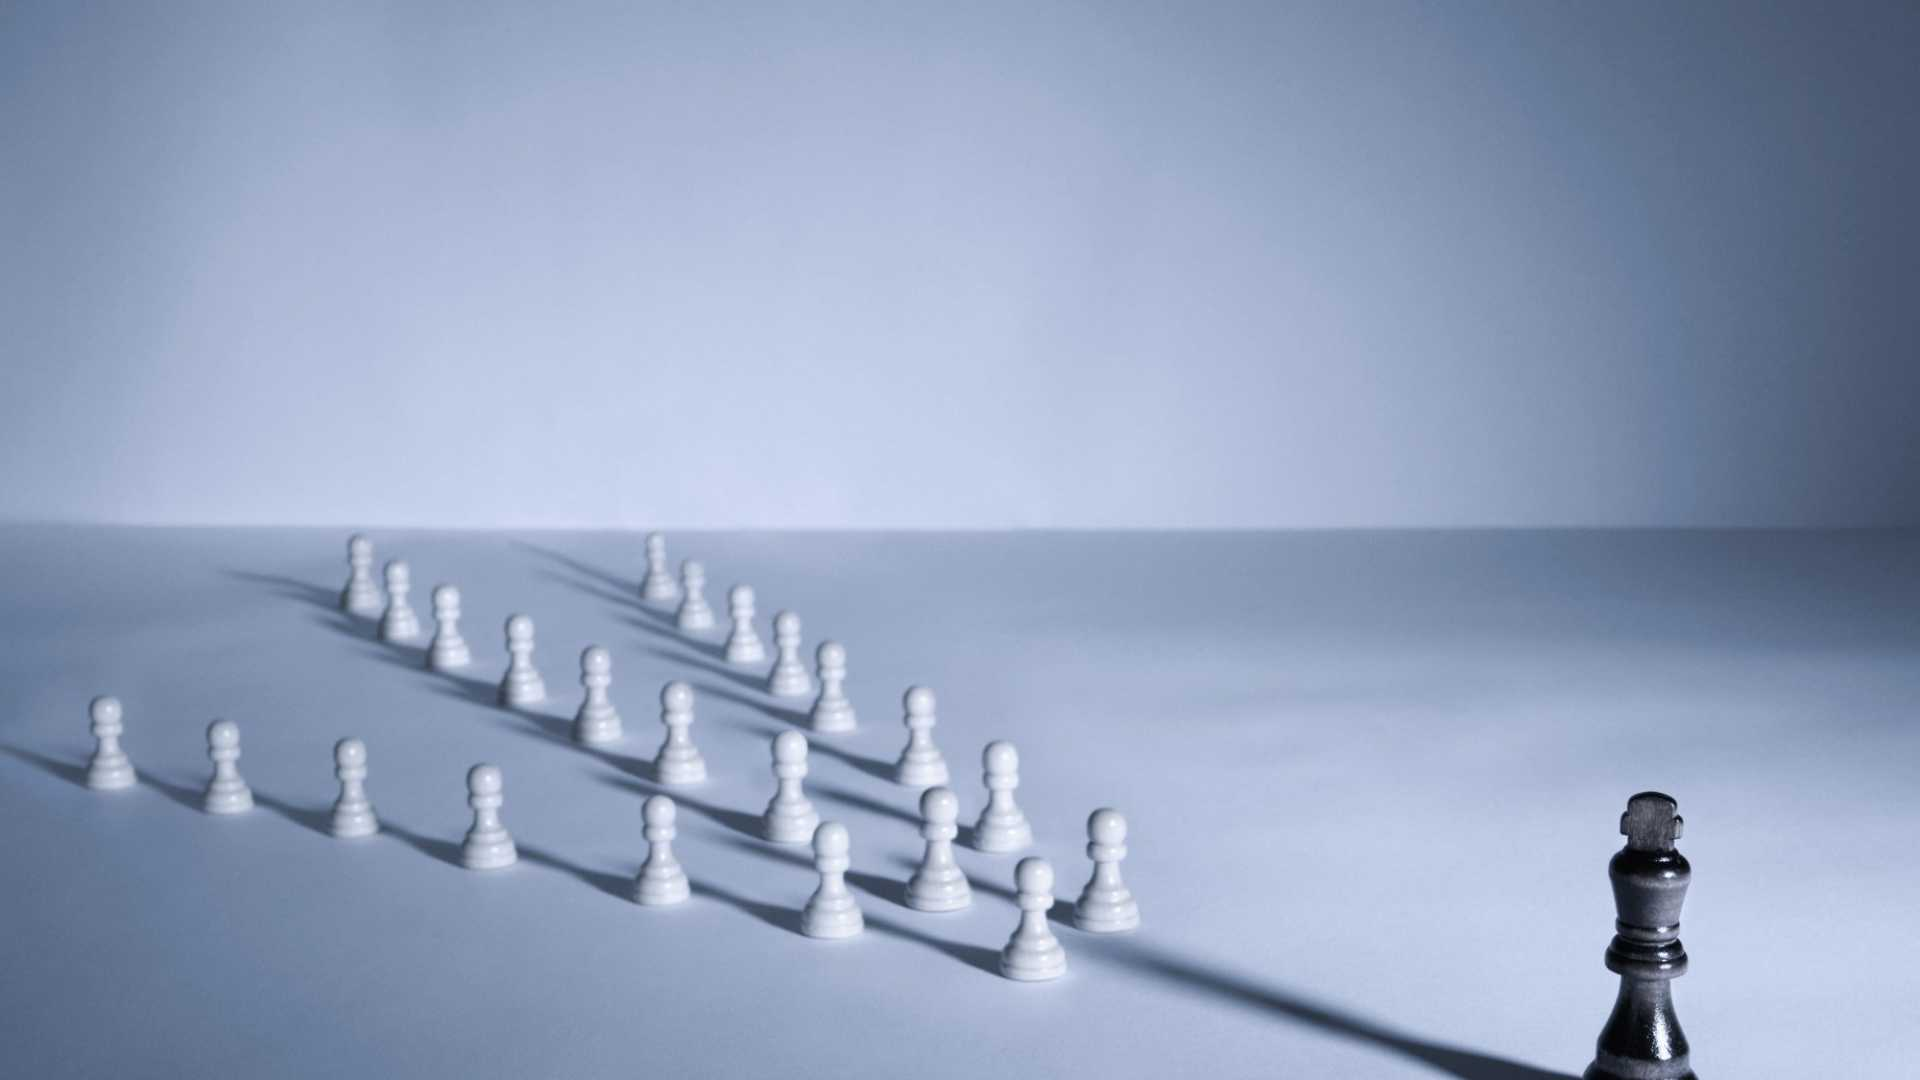 4 Easy Ways to Become an Unforgettable Leader